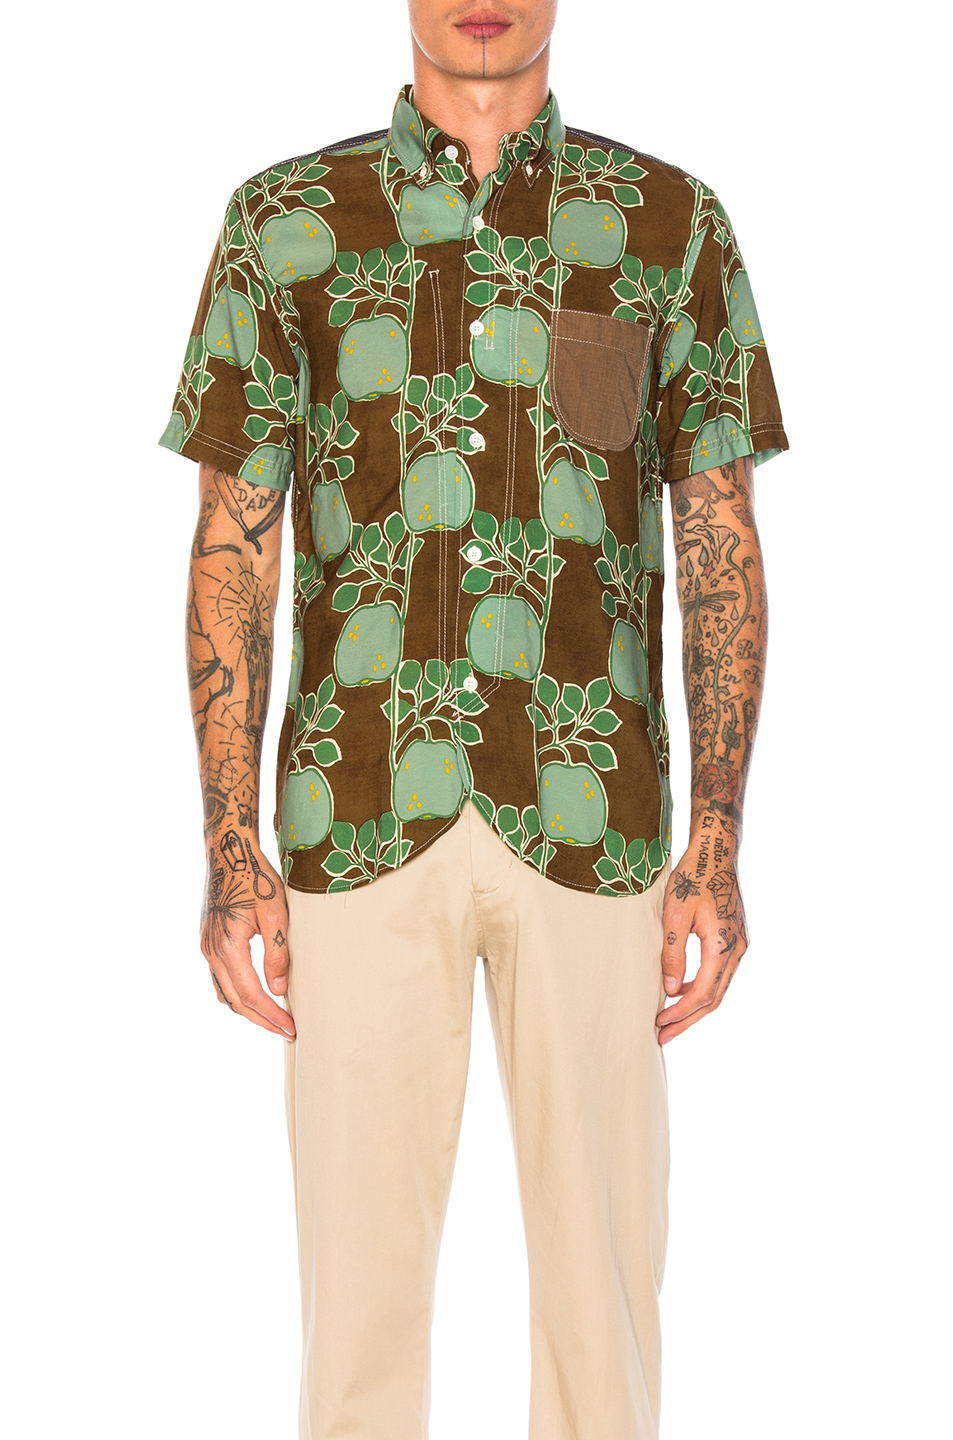 Junya Watanabe Cupra Modal Voile Print & Cotton Stripe Shirt in Brown,Green,Floral